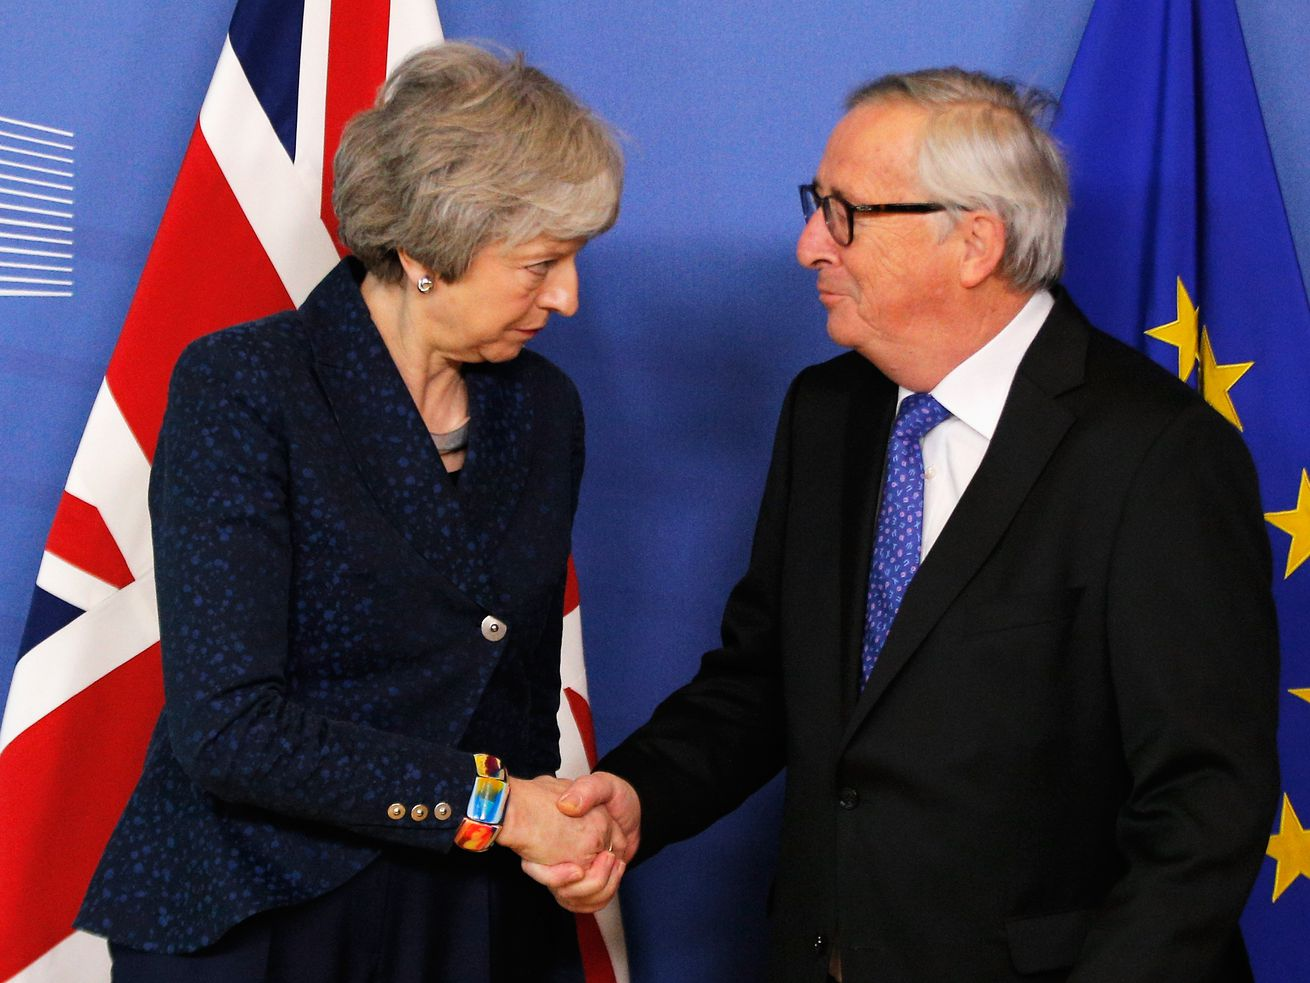 British Prime Minister Theresa May meets with European Commission President Jean-Claude Juncker on February 7, 2019.